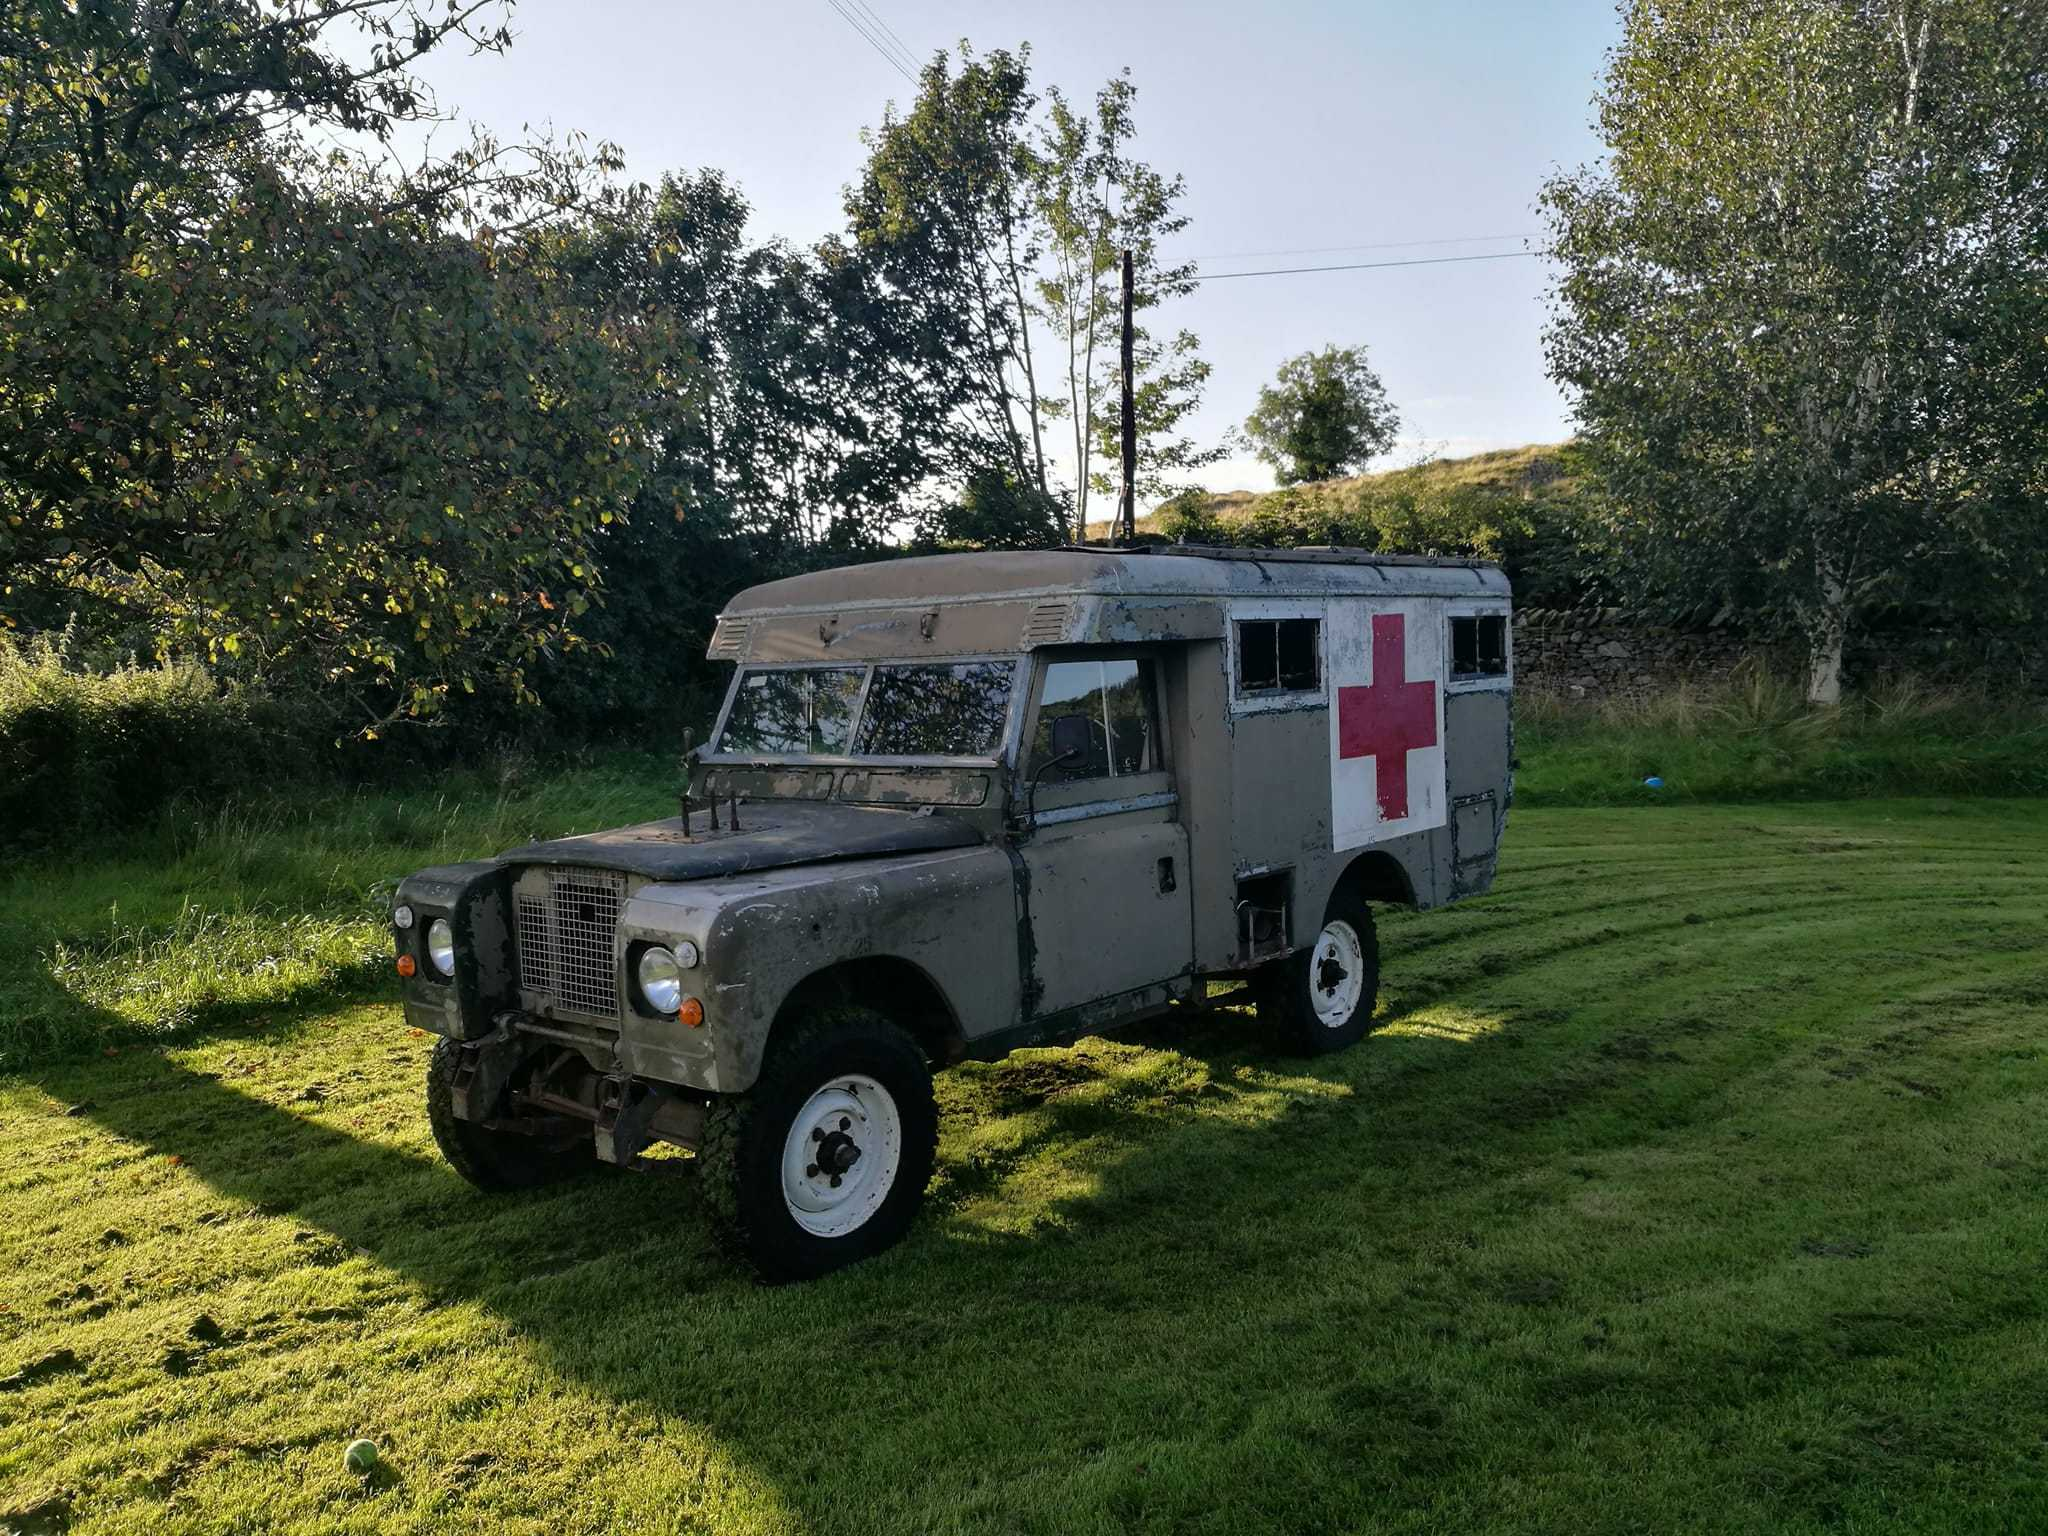 Yves Leather is hoping to restore this former military ambulance